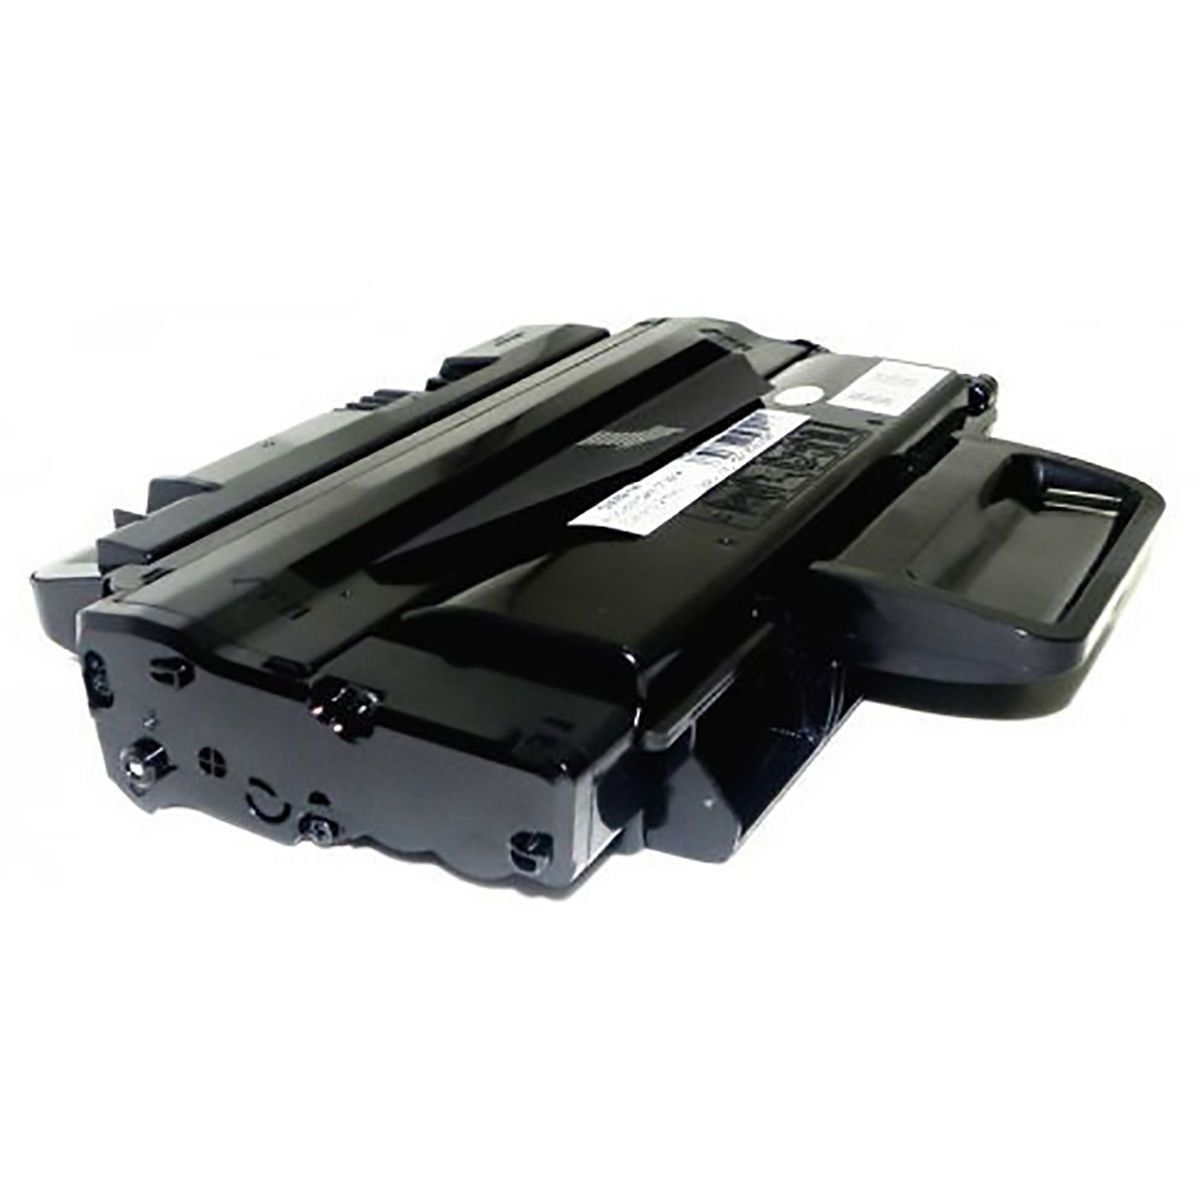 Compatível: Toner D2850B para Samsung ML-2850 ML-2851 2850d 2851d 2851nd 2851ndl ML2850 ML2851 / Preto / 5.000